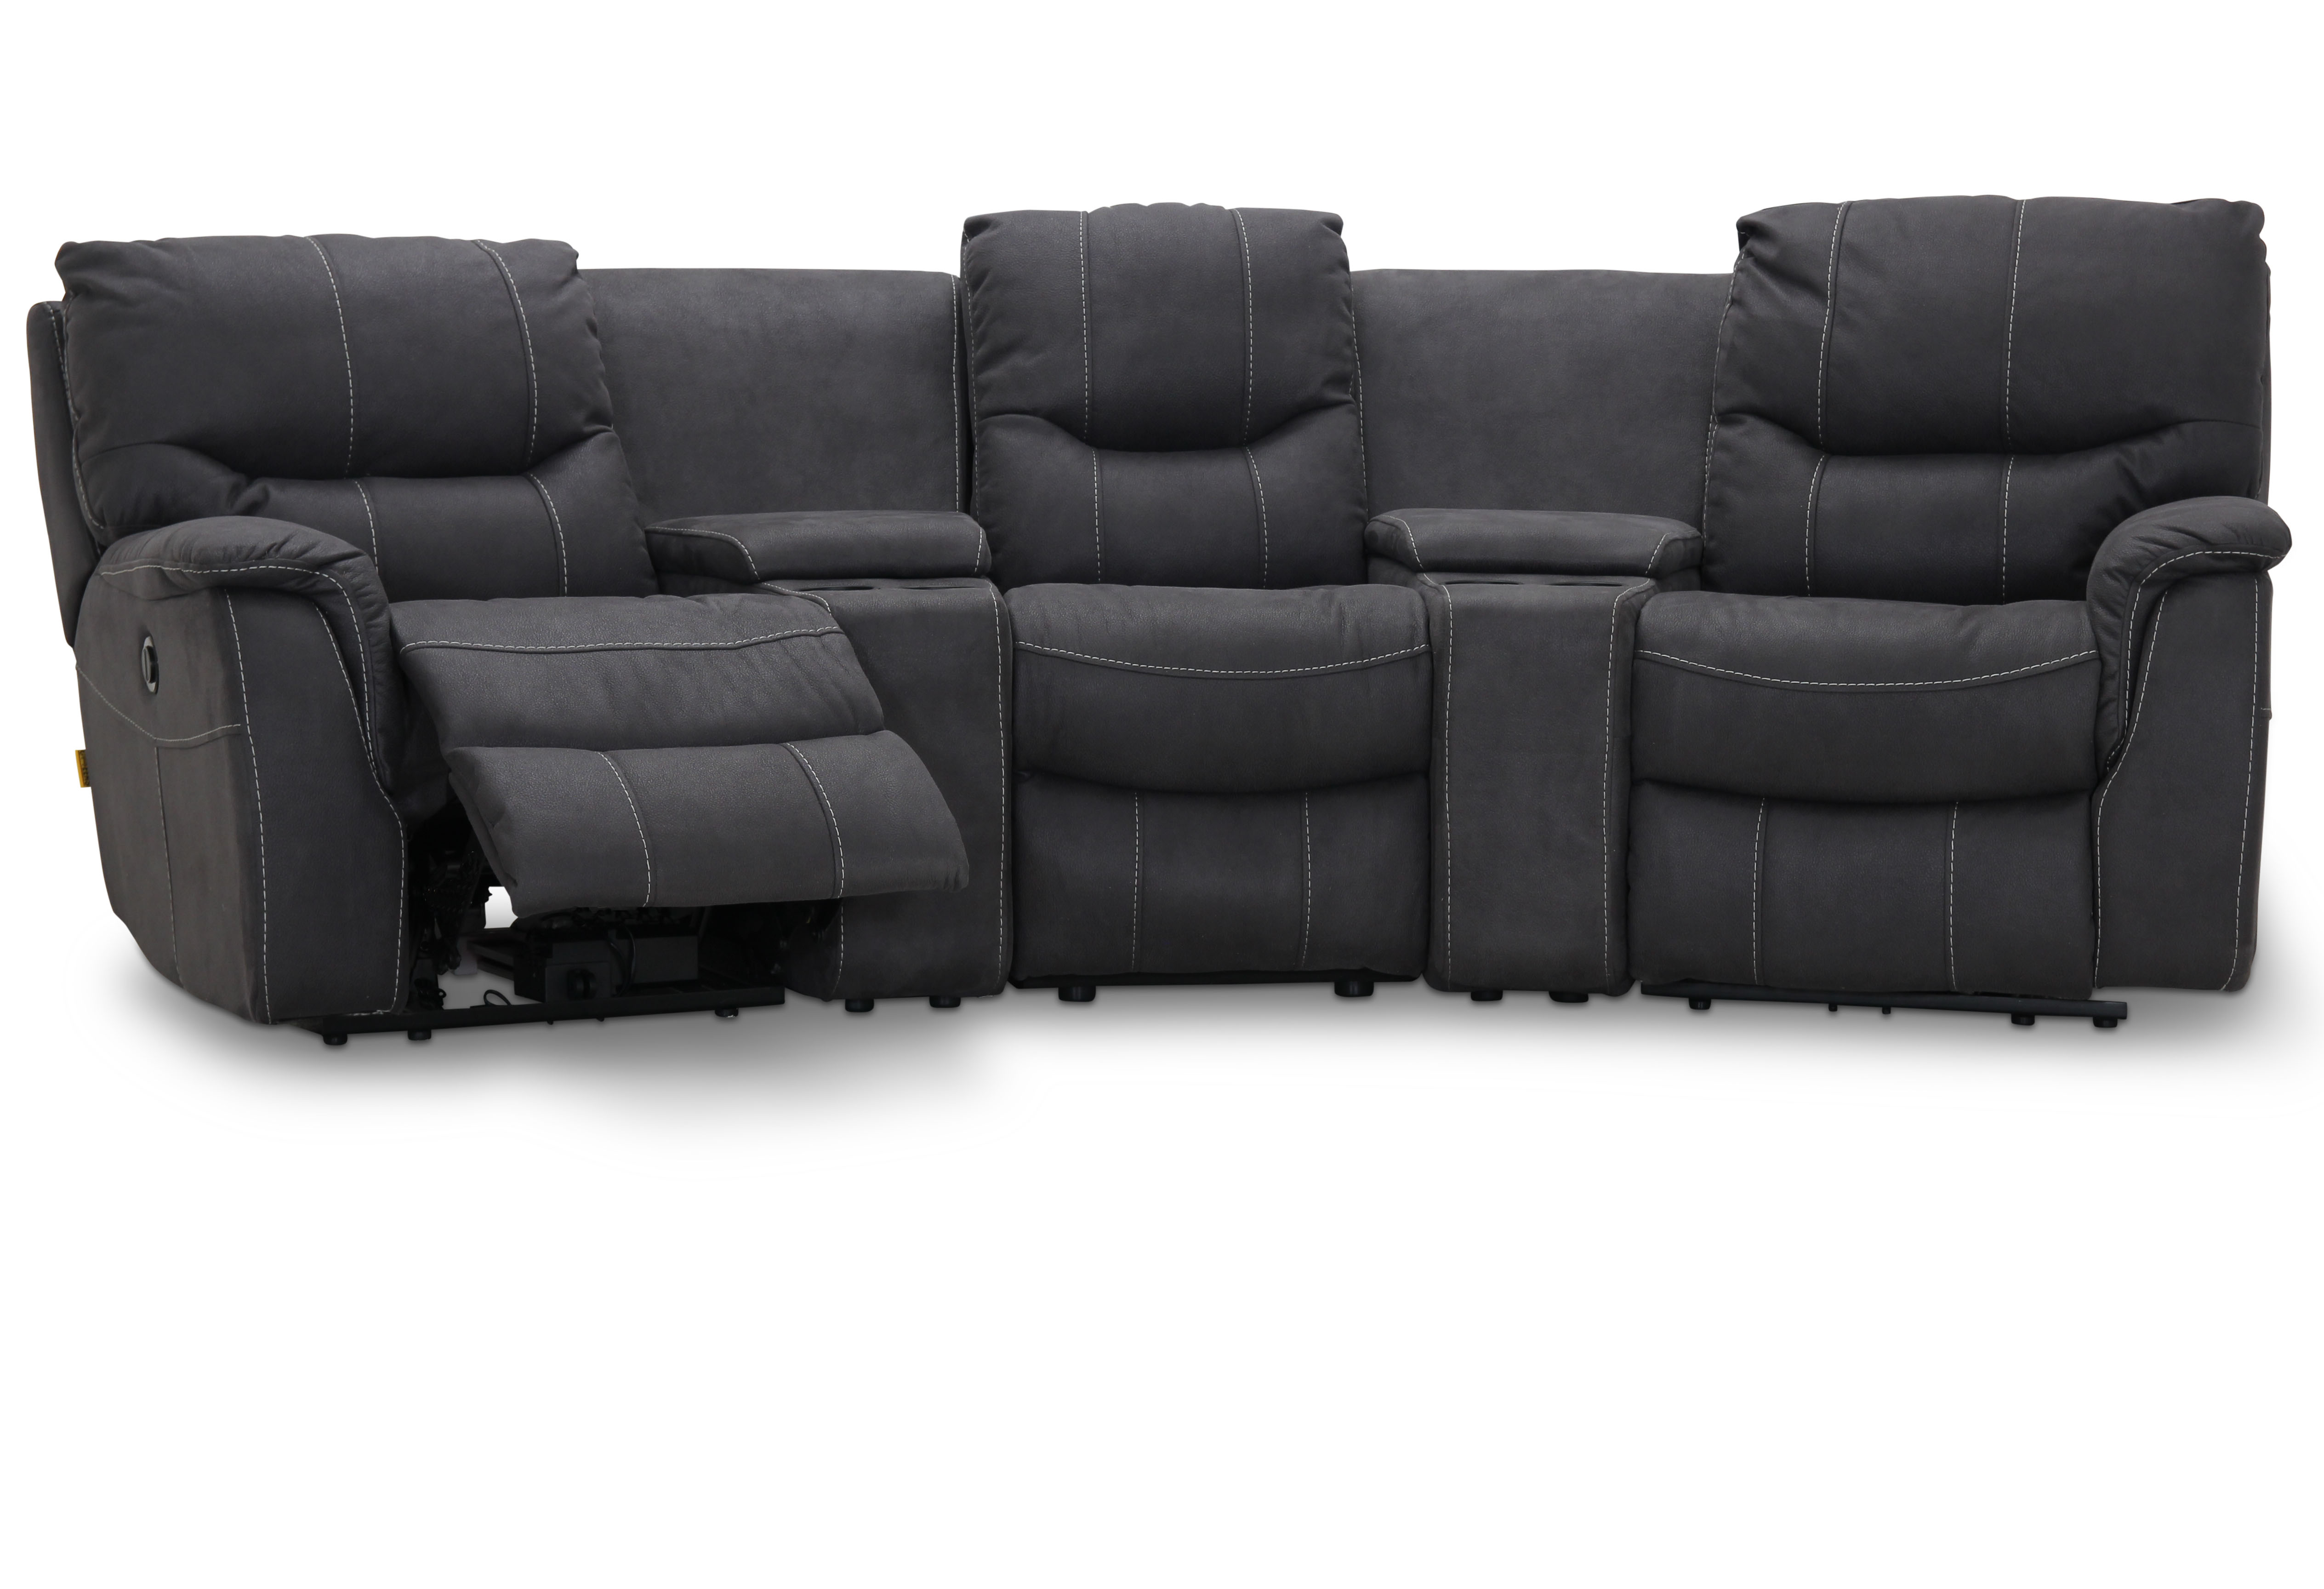 Colorado Recliner Bio 3-sits